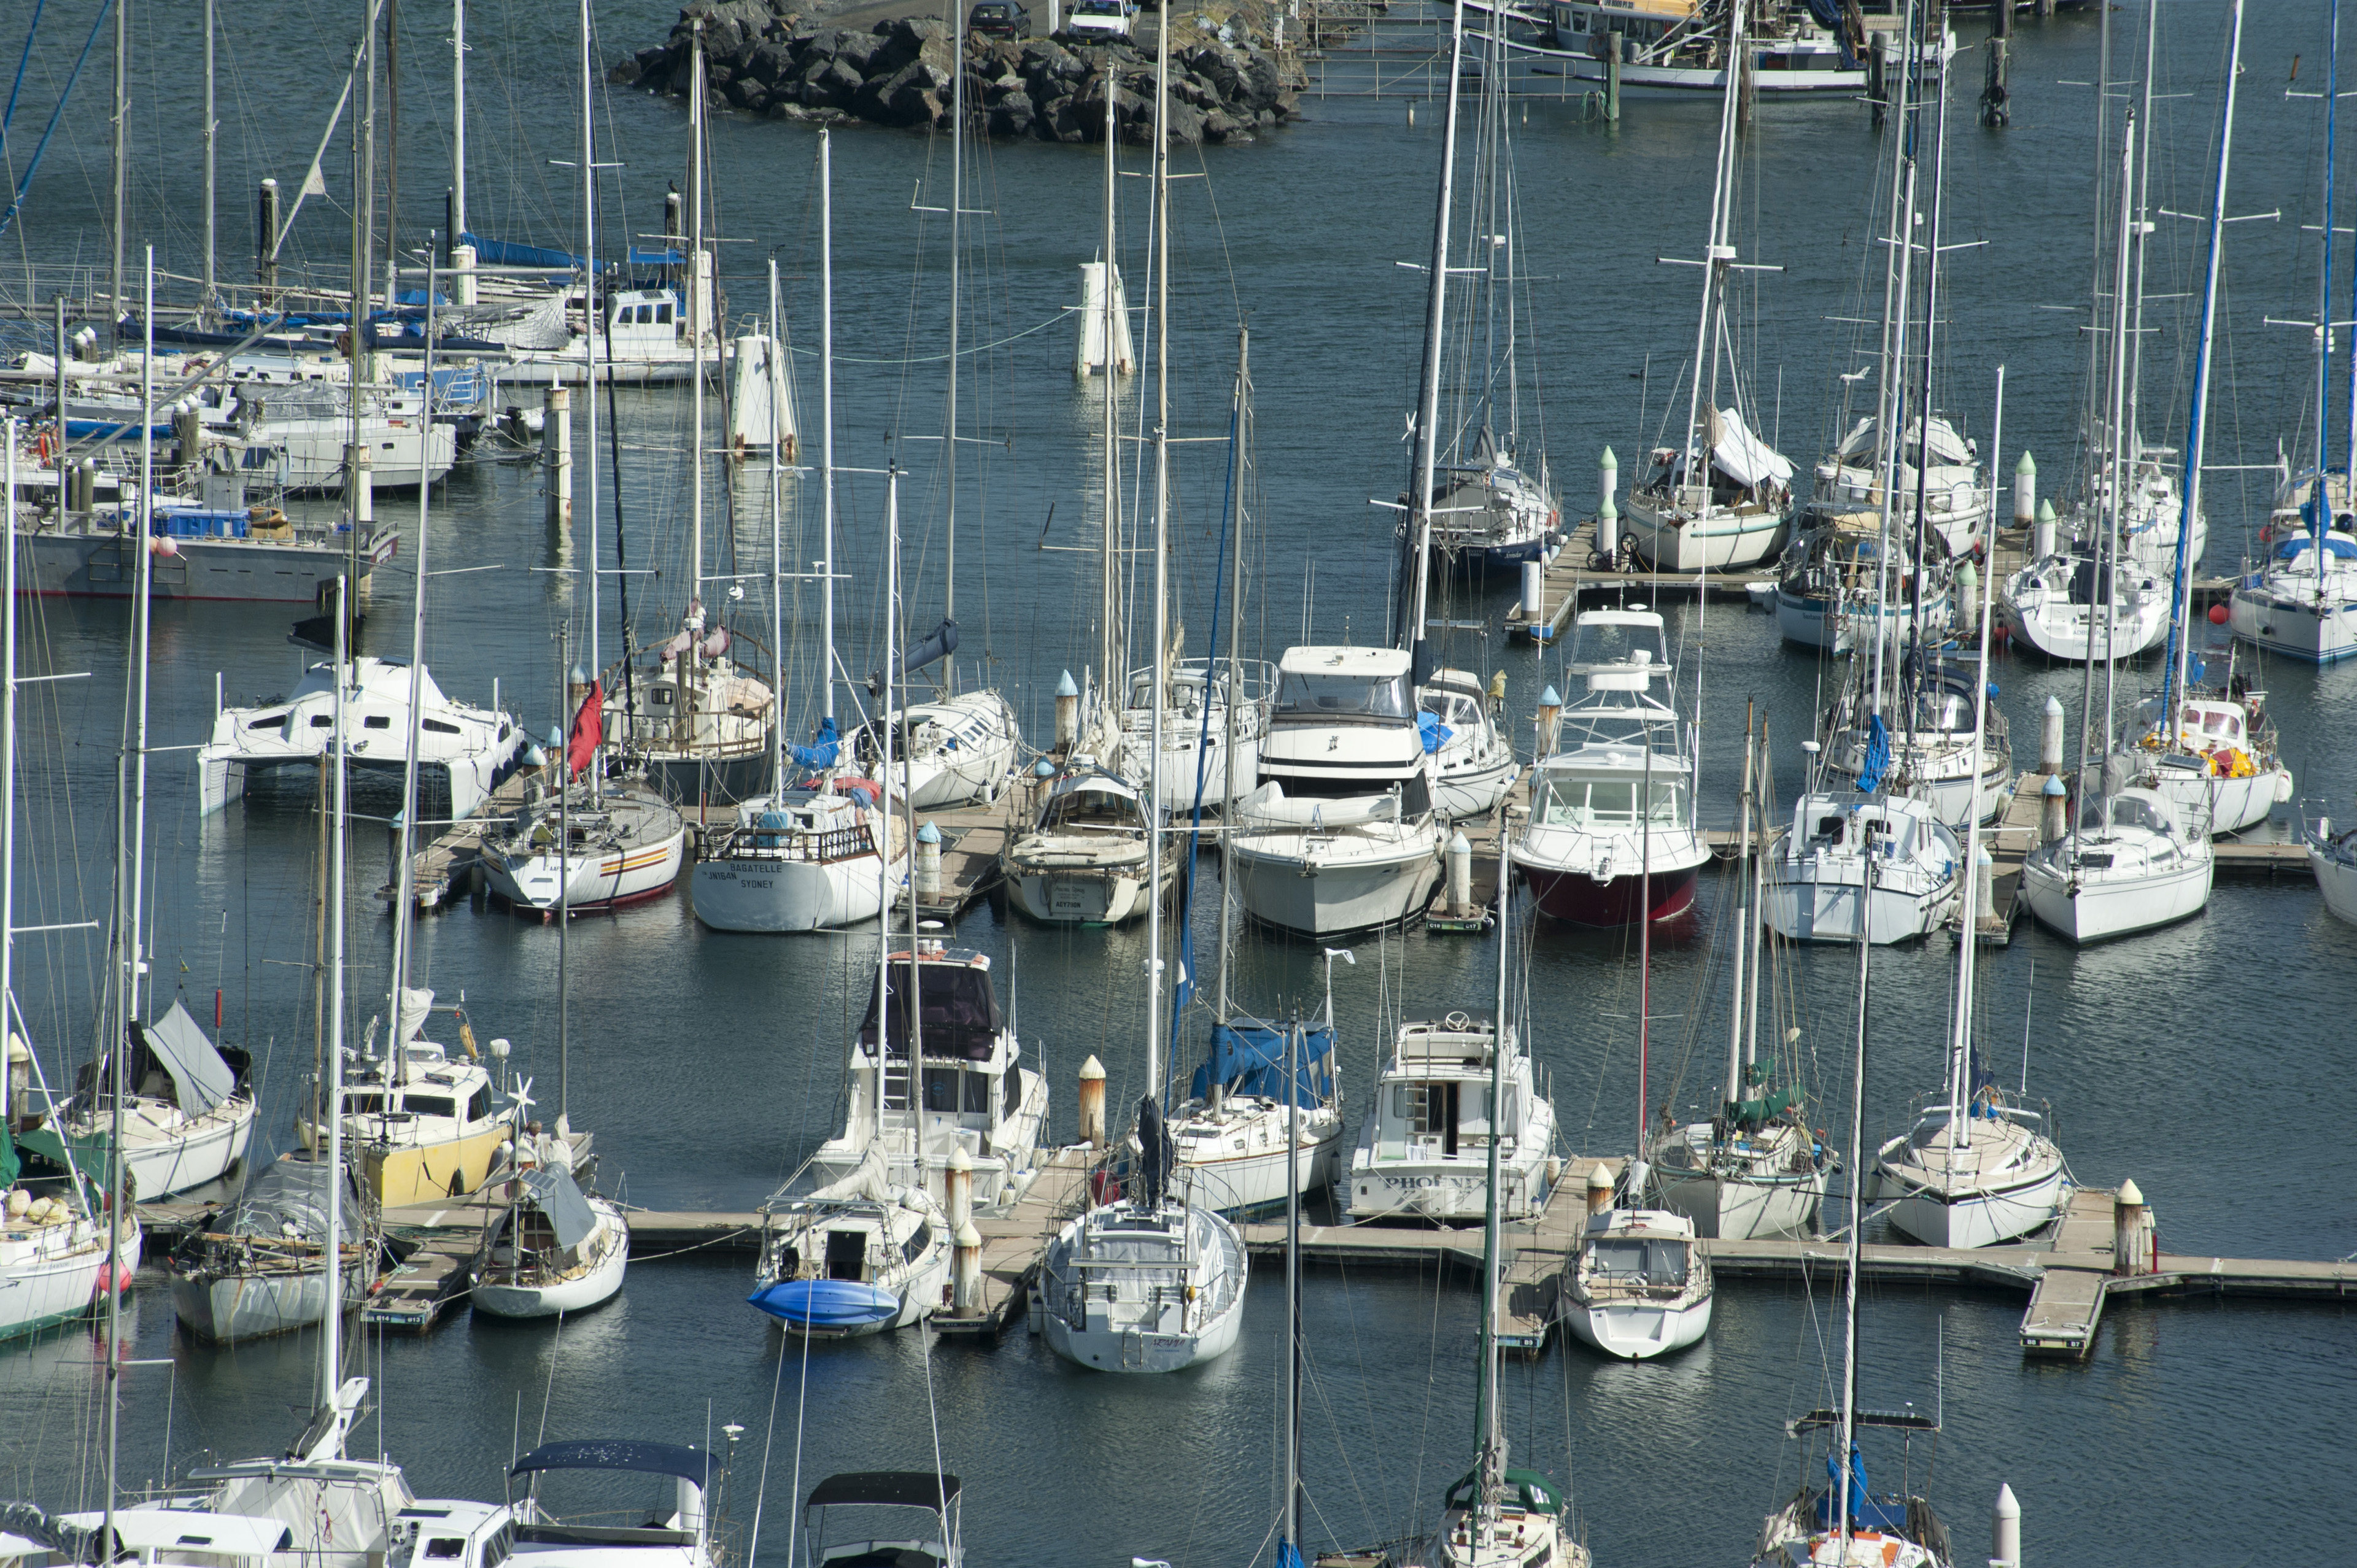 Overview of Many Sailboat Yachts Anchored Along Docks in Marina